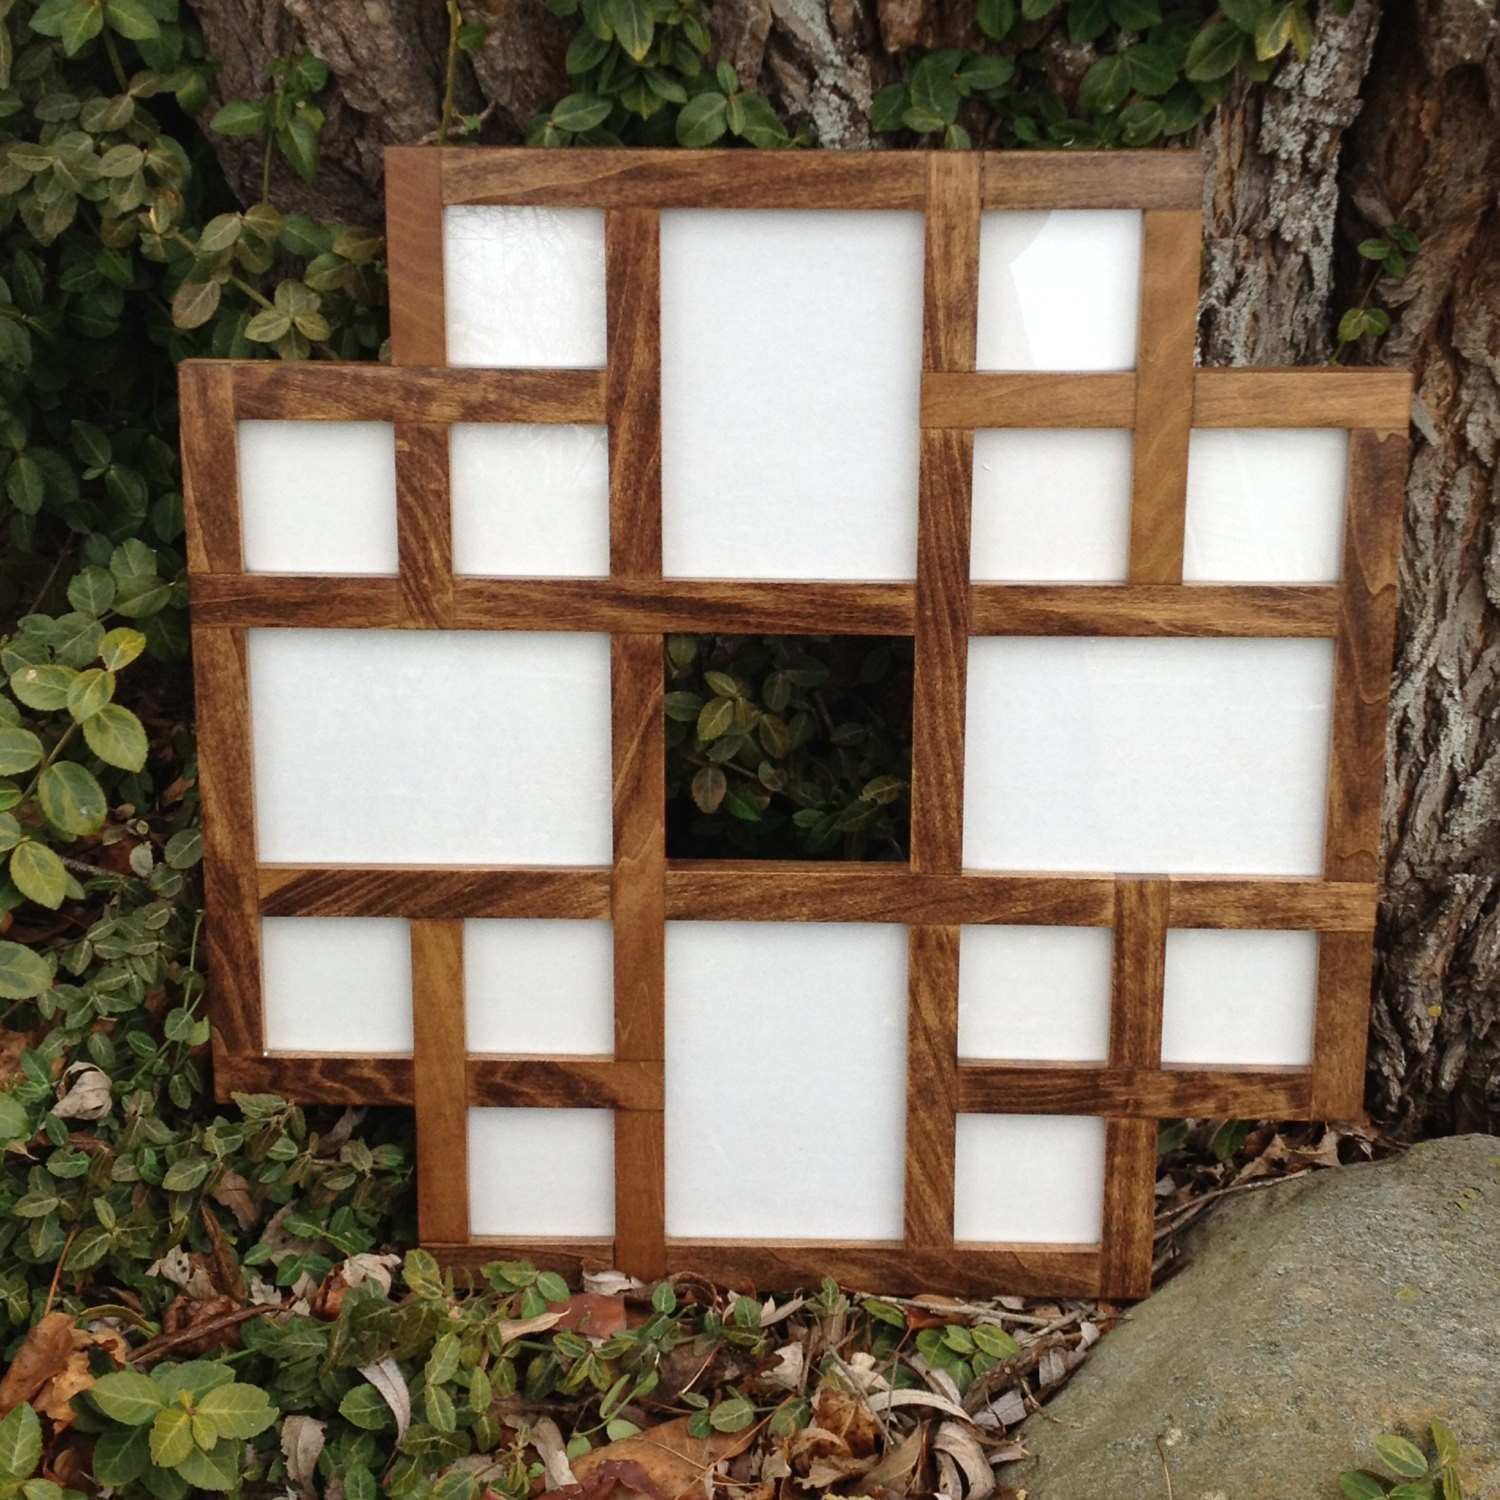 Beste Picture Frame Multiple Openings Bilder Benutzerdefinierte